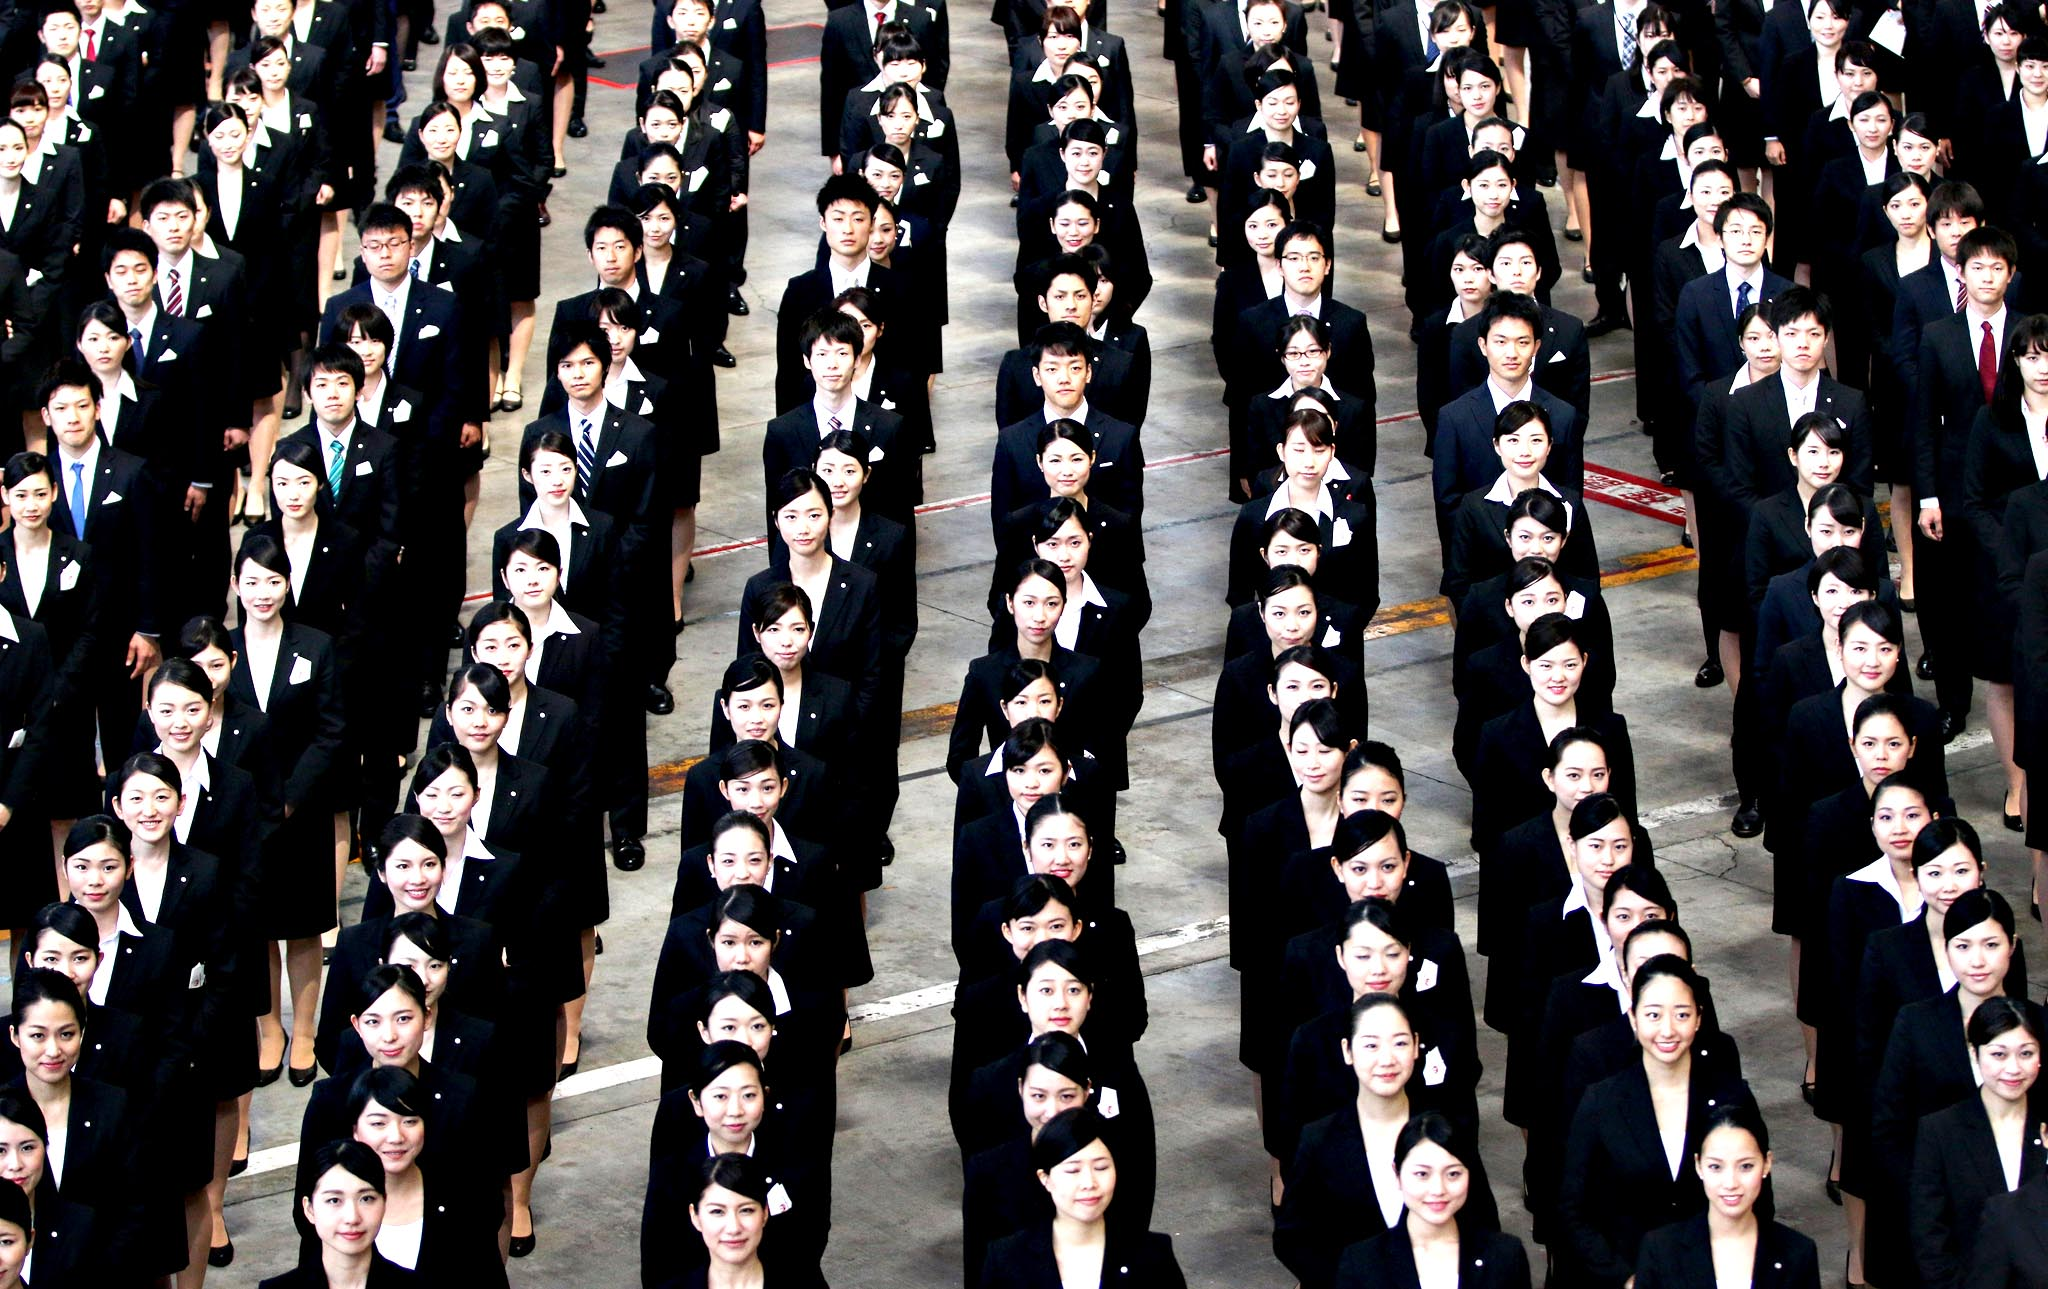 Japan Airlines Co. (JAL) group companies' new employees line up for a photograph during a welcoming ceremony at the company's hangar near Haneda Airport in Tokyo, Japan, on Tuesday, April 1, 2014. The jobless rate dropped to 3.6% in the world s third-largest economy according to data released on March 28.